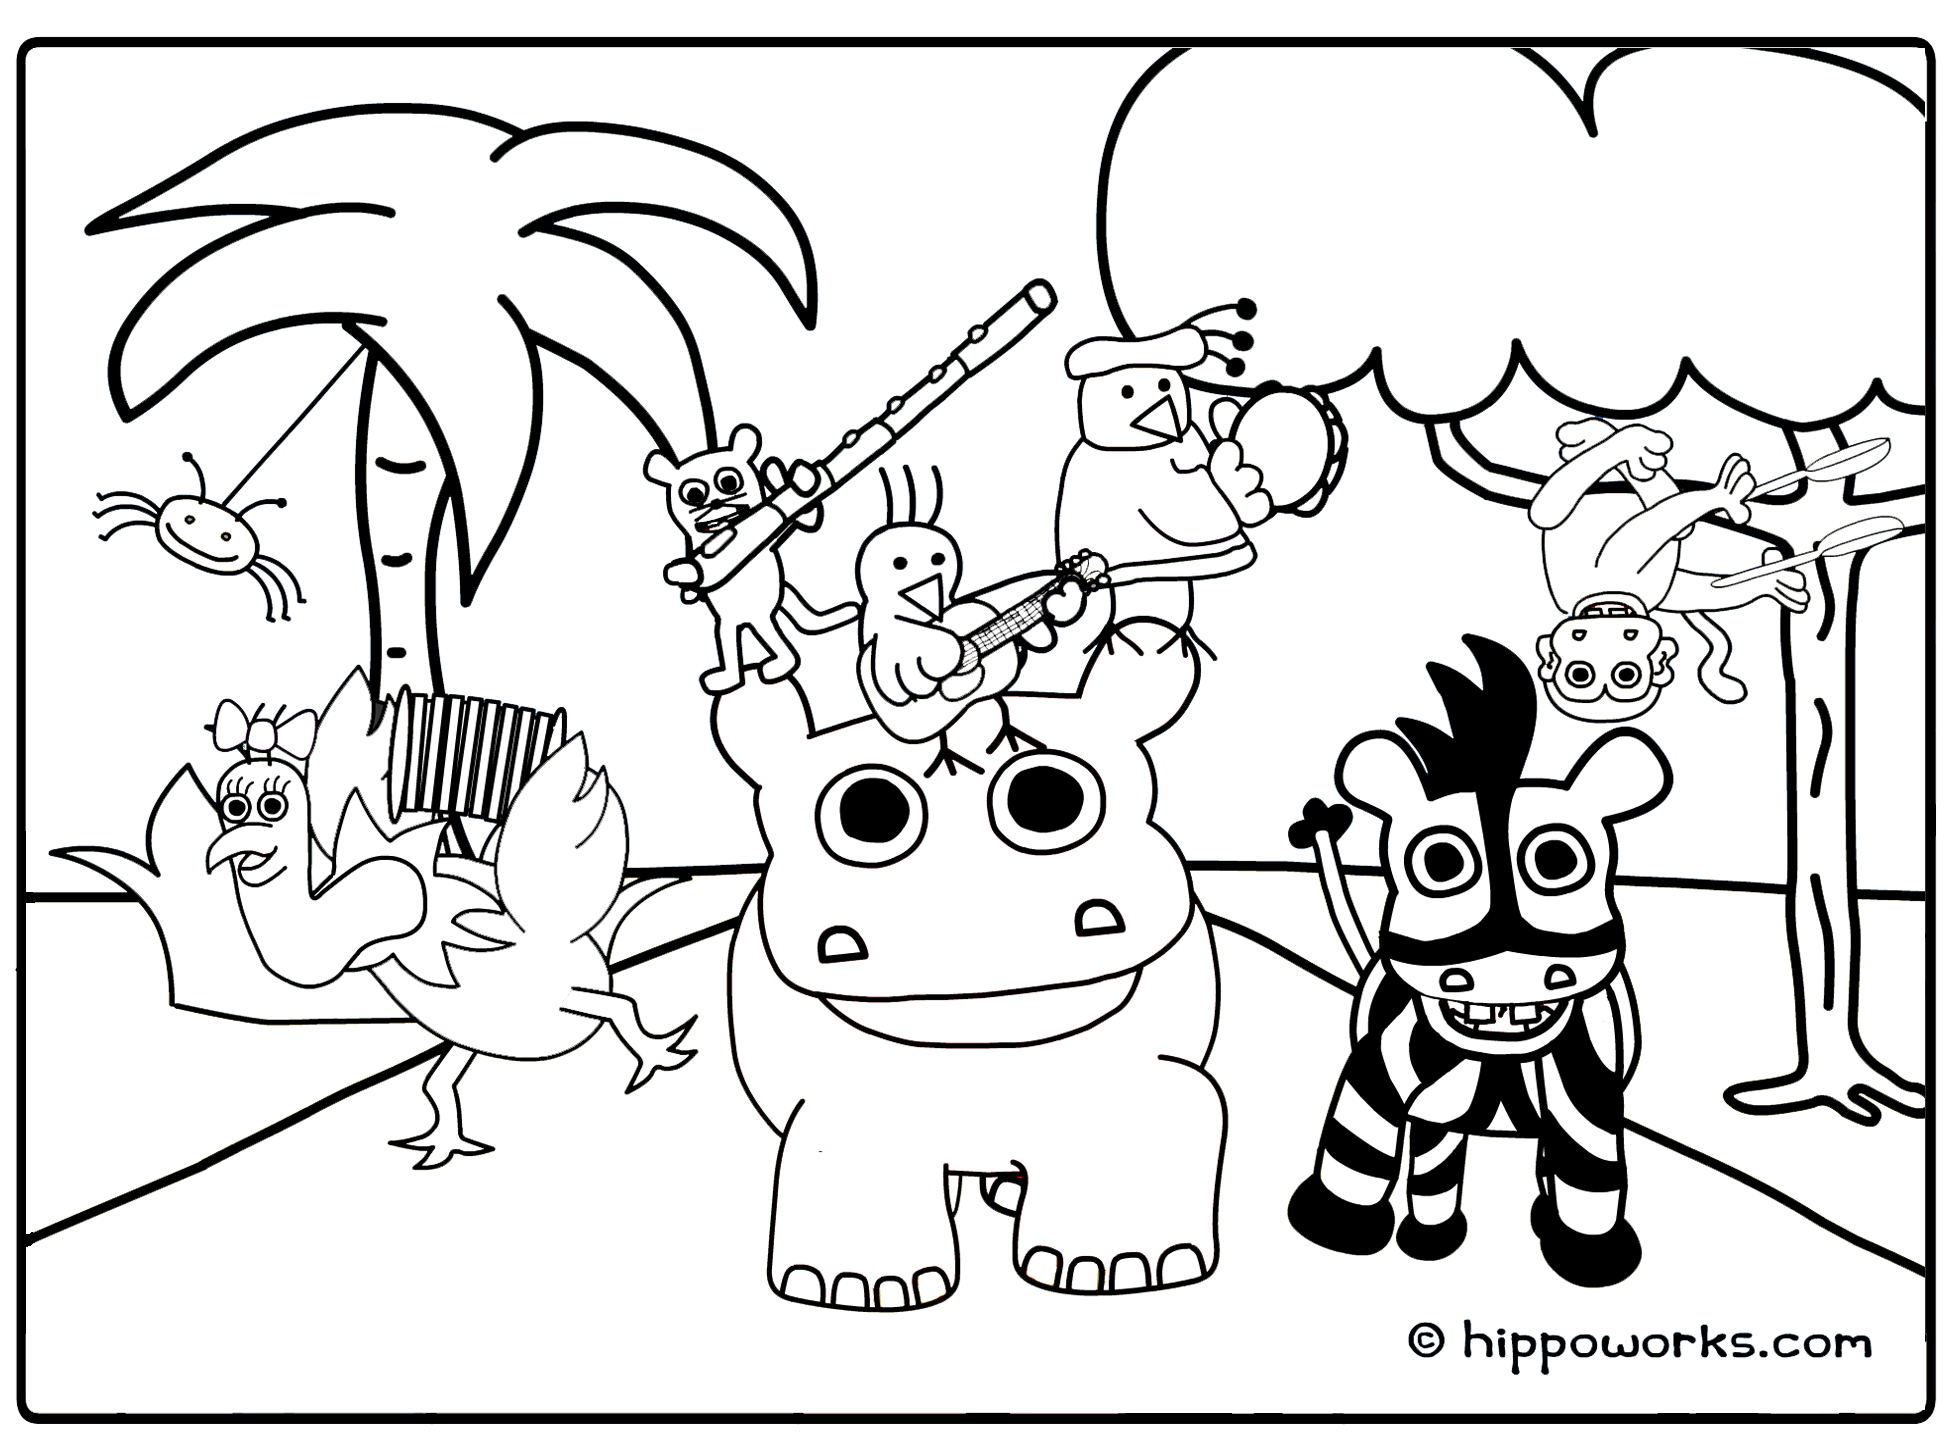 Jungle coloring pages to download and print for free